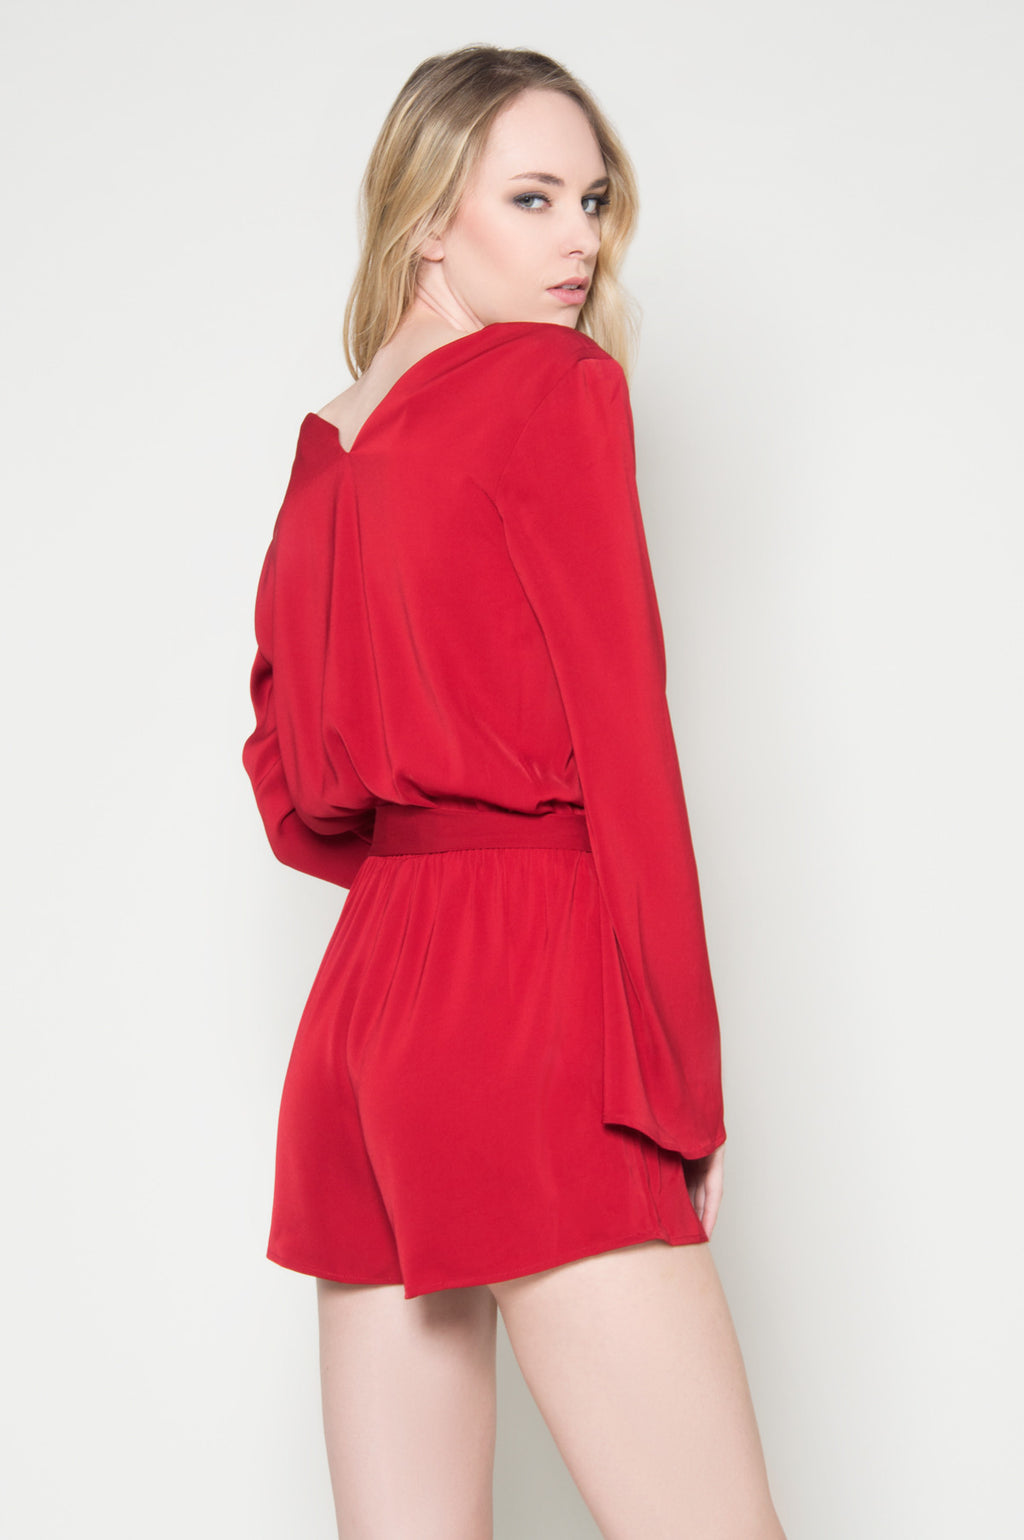 red romper shorts long sleeve Valentina bell sleeve romper